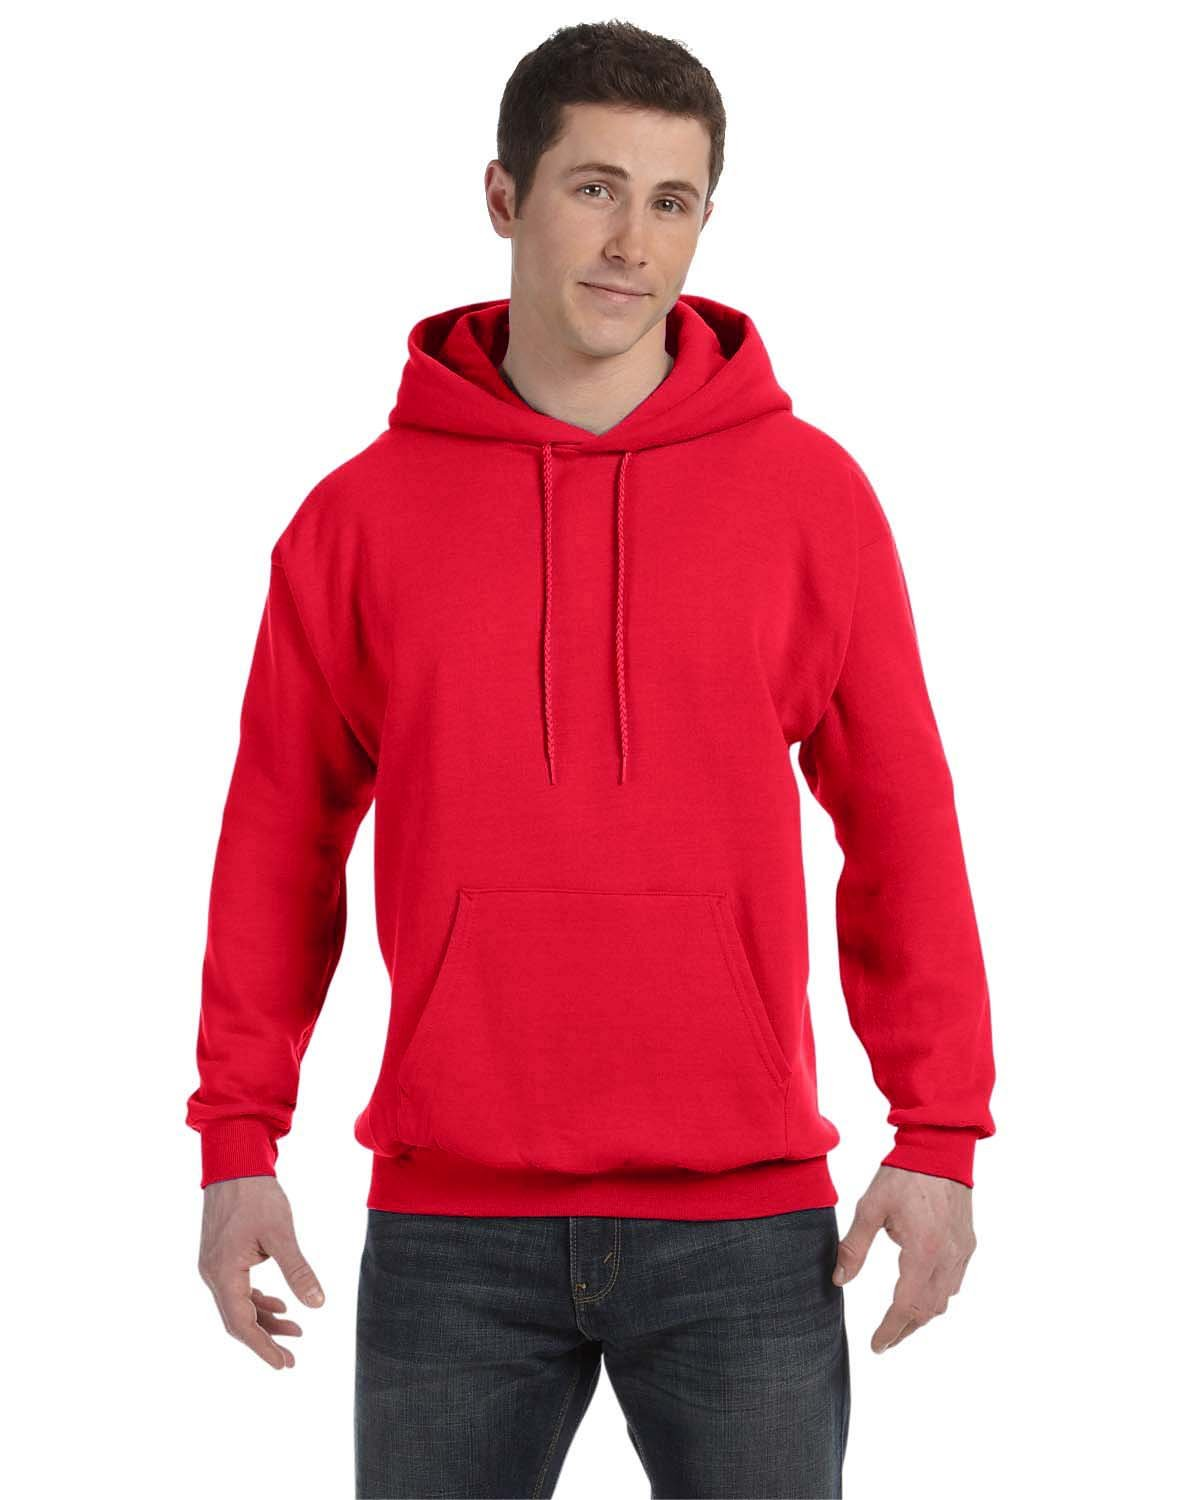 Hanes Unisex Ecosmart® 50/50 Pullover Hooded Sweatshirt ATHLETIC RED